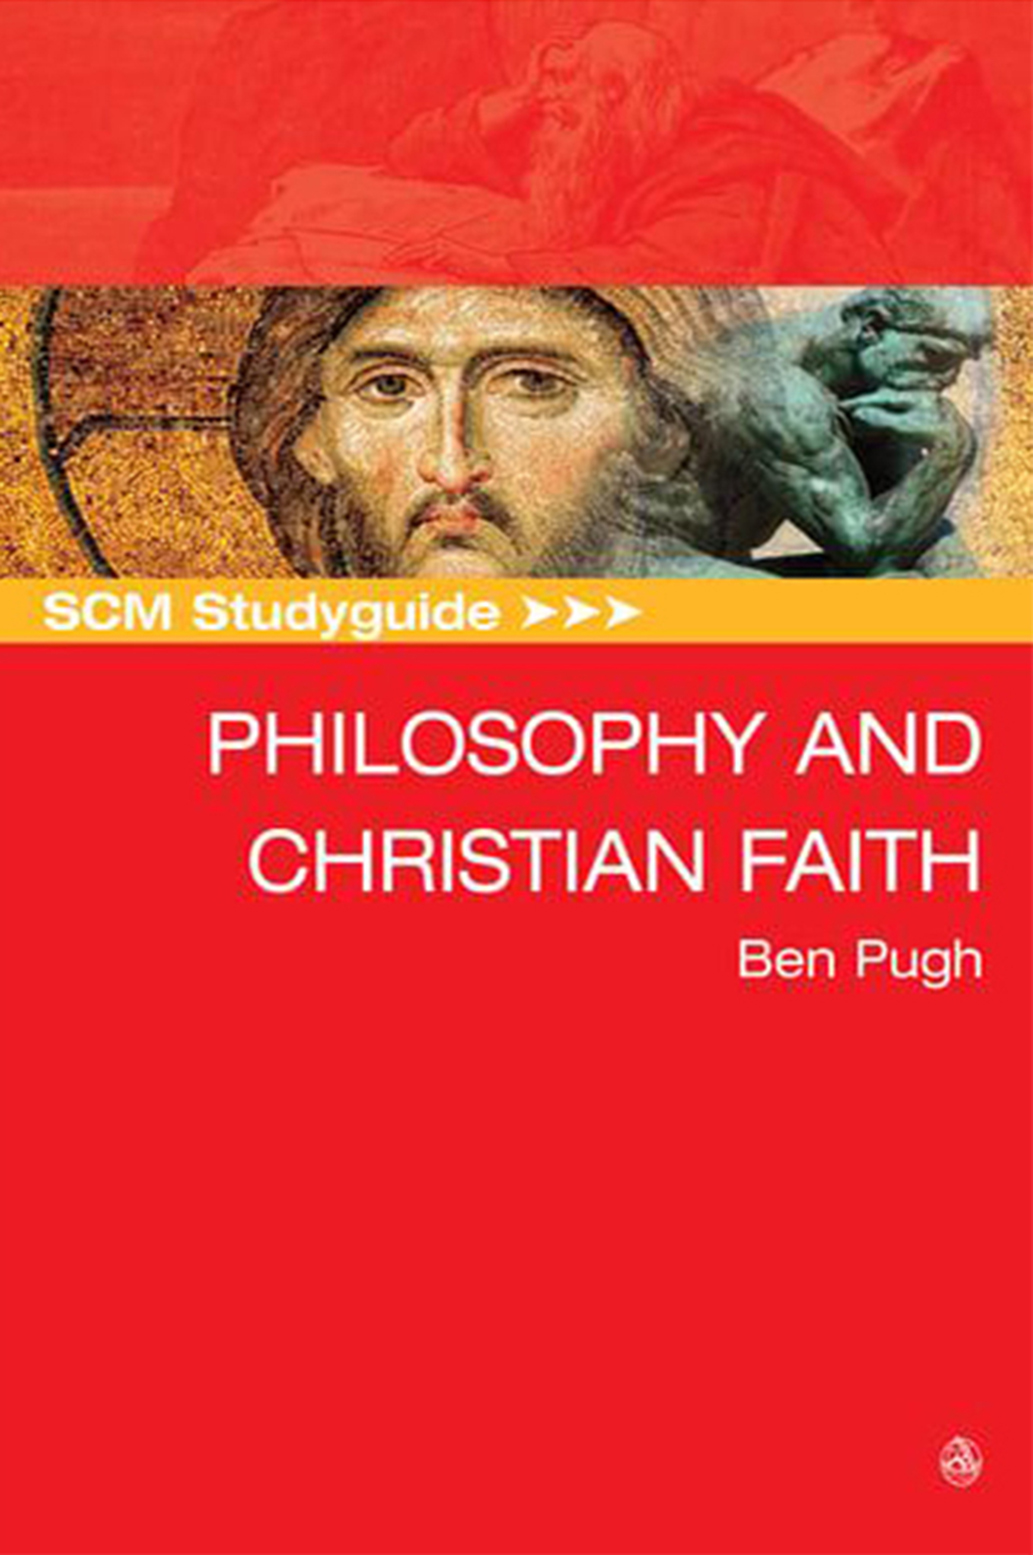 Philosophy and Christian Faith